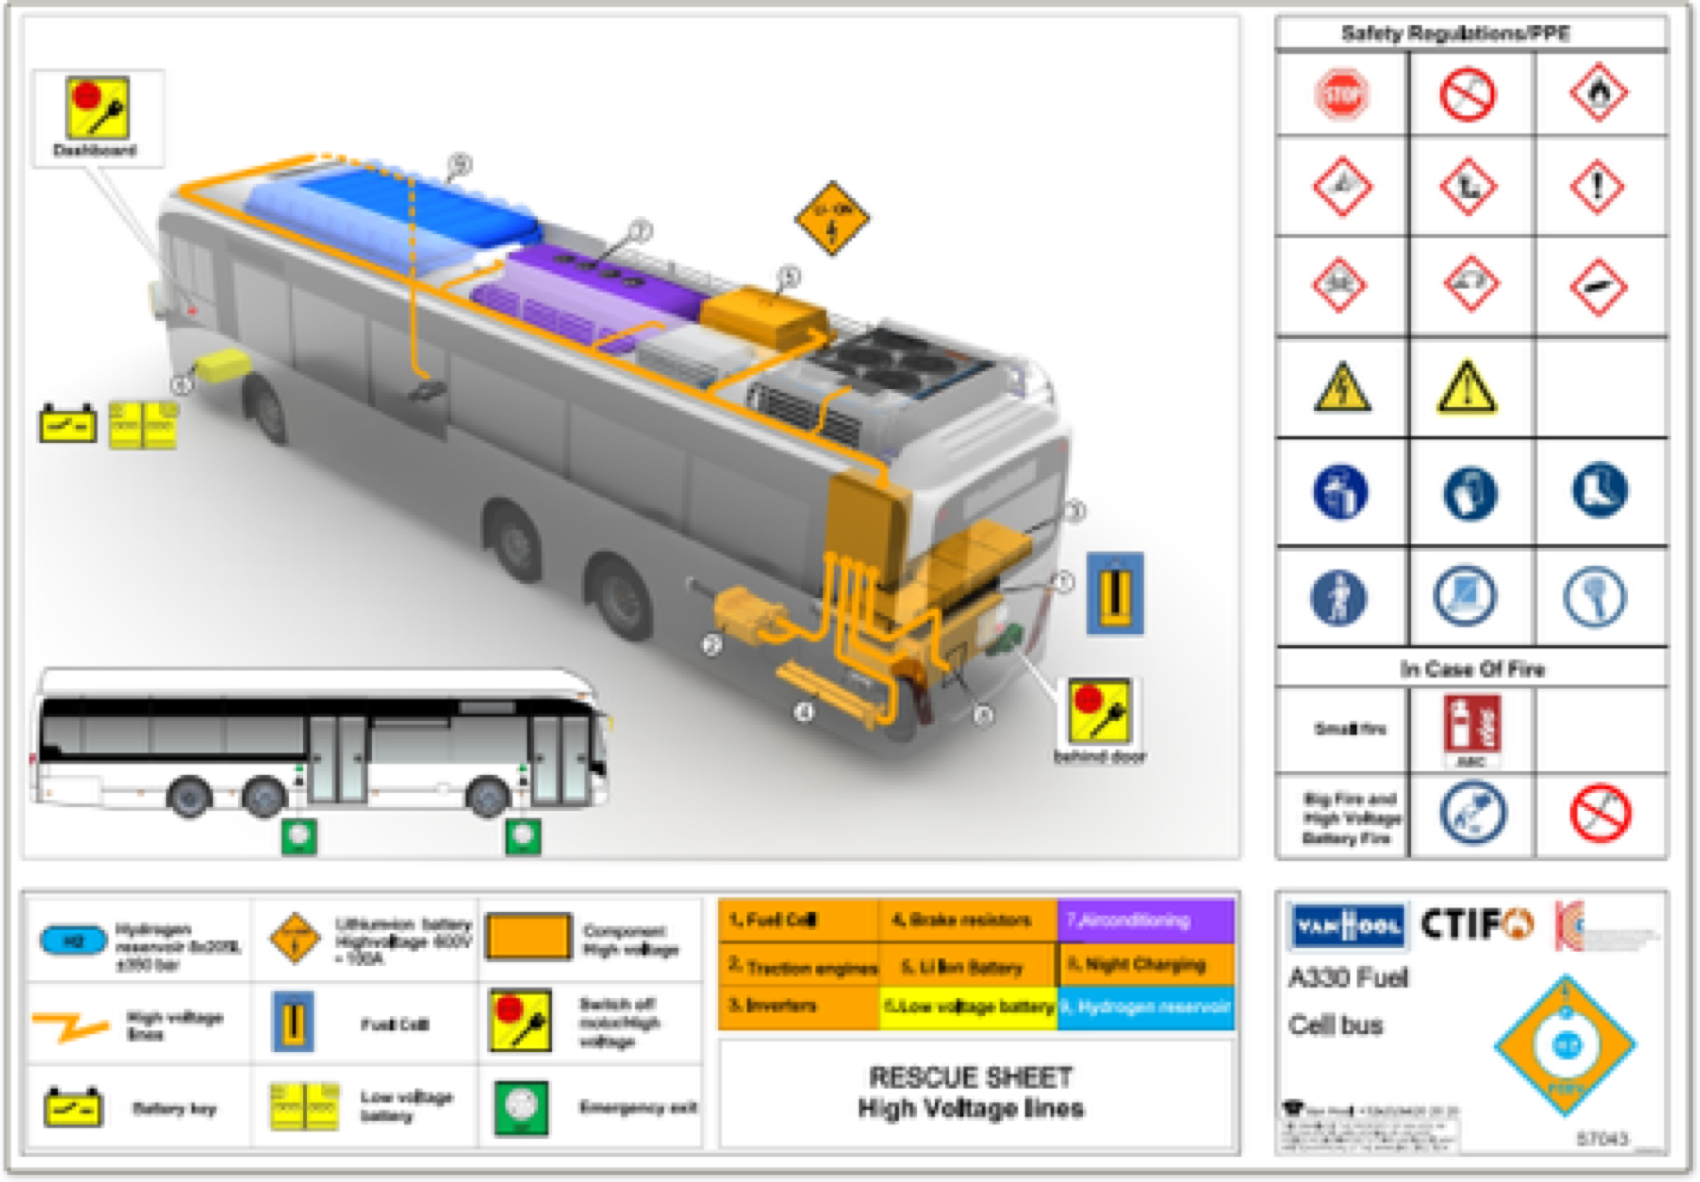 Example of a rescue sheet for a bus